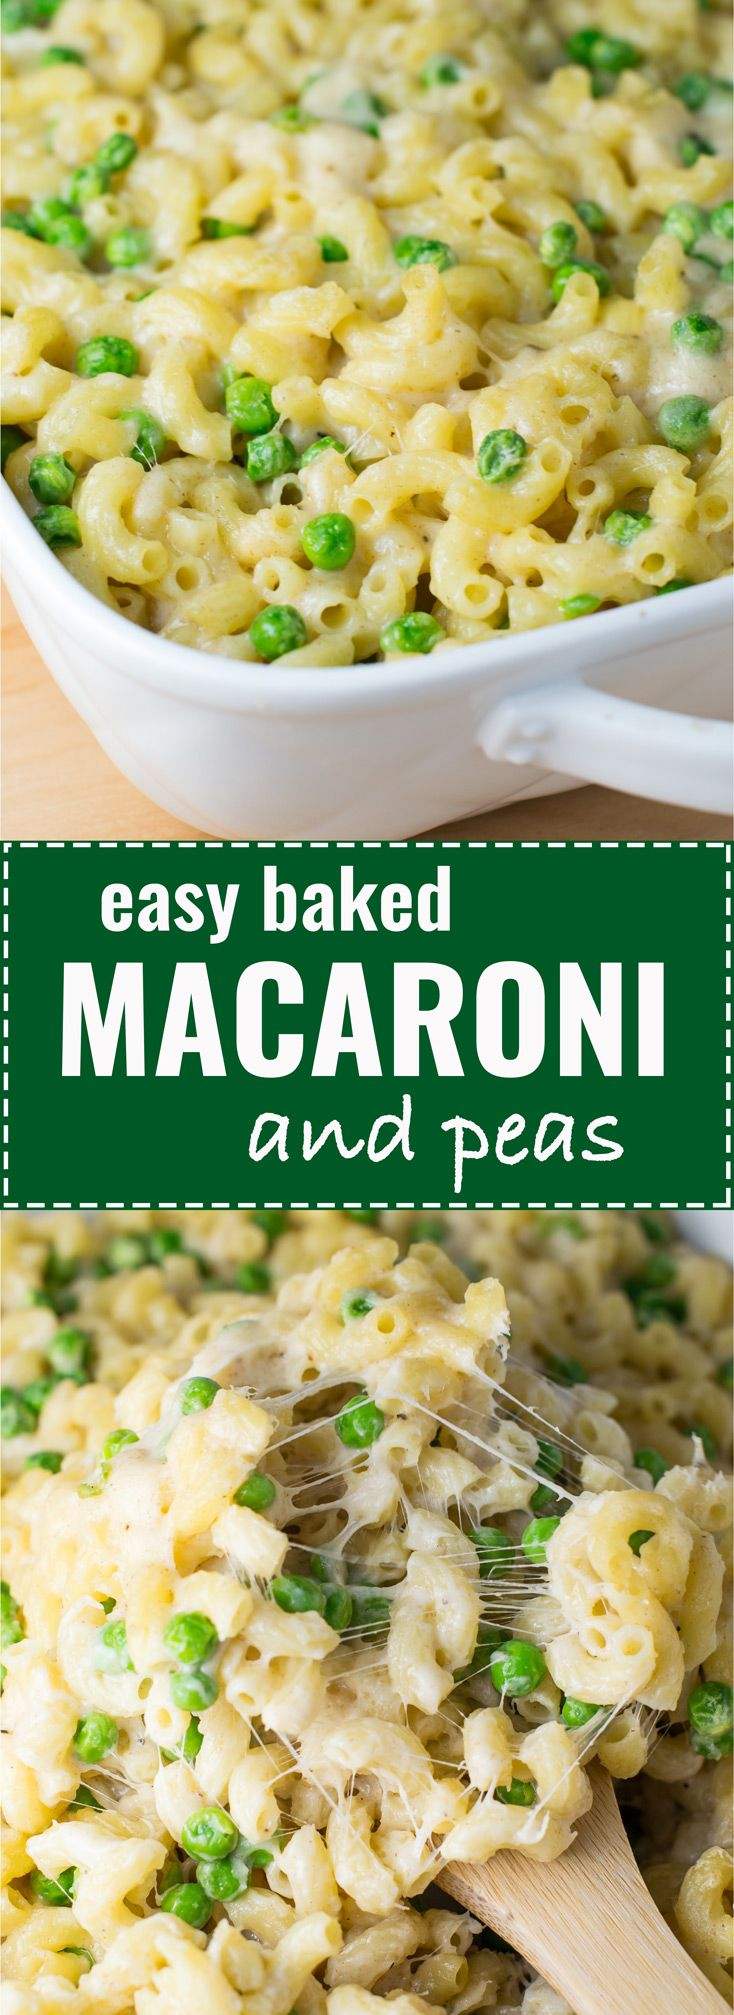 Easy baked macaroni and peas recipe - ready in less than 30 minutes! #macandcheese #macandpeas #dinner